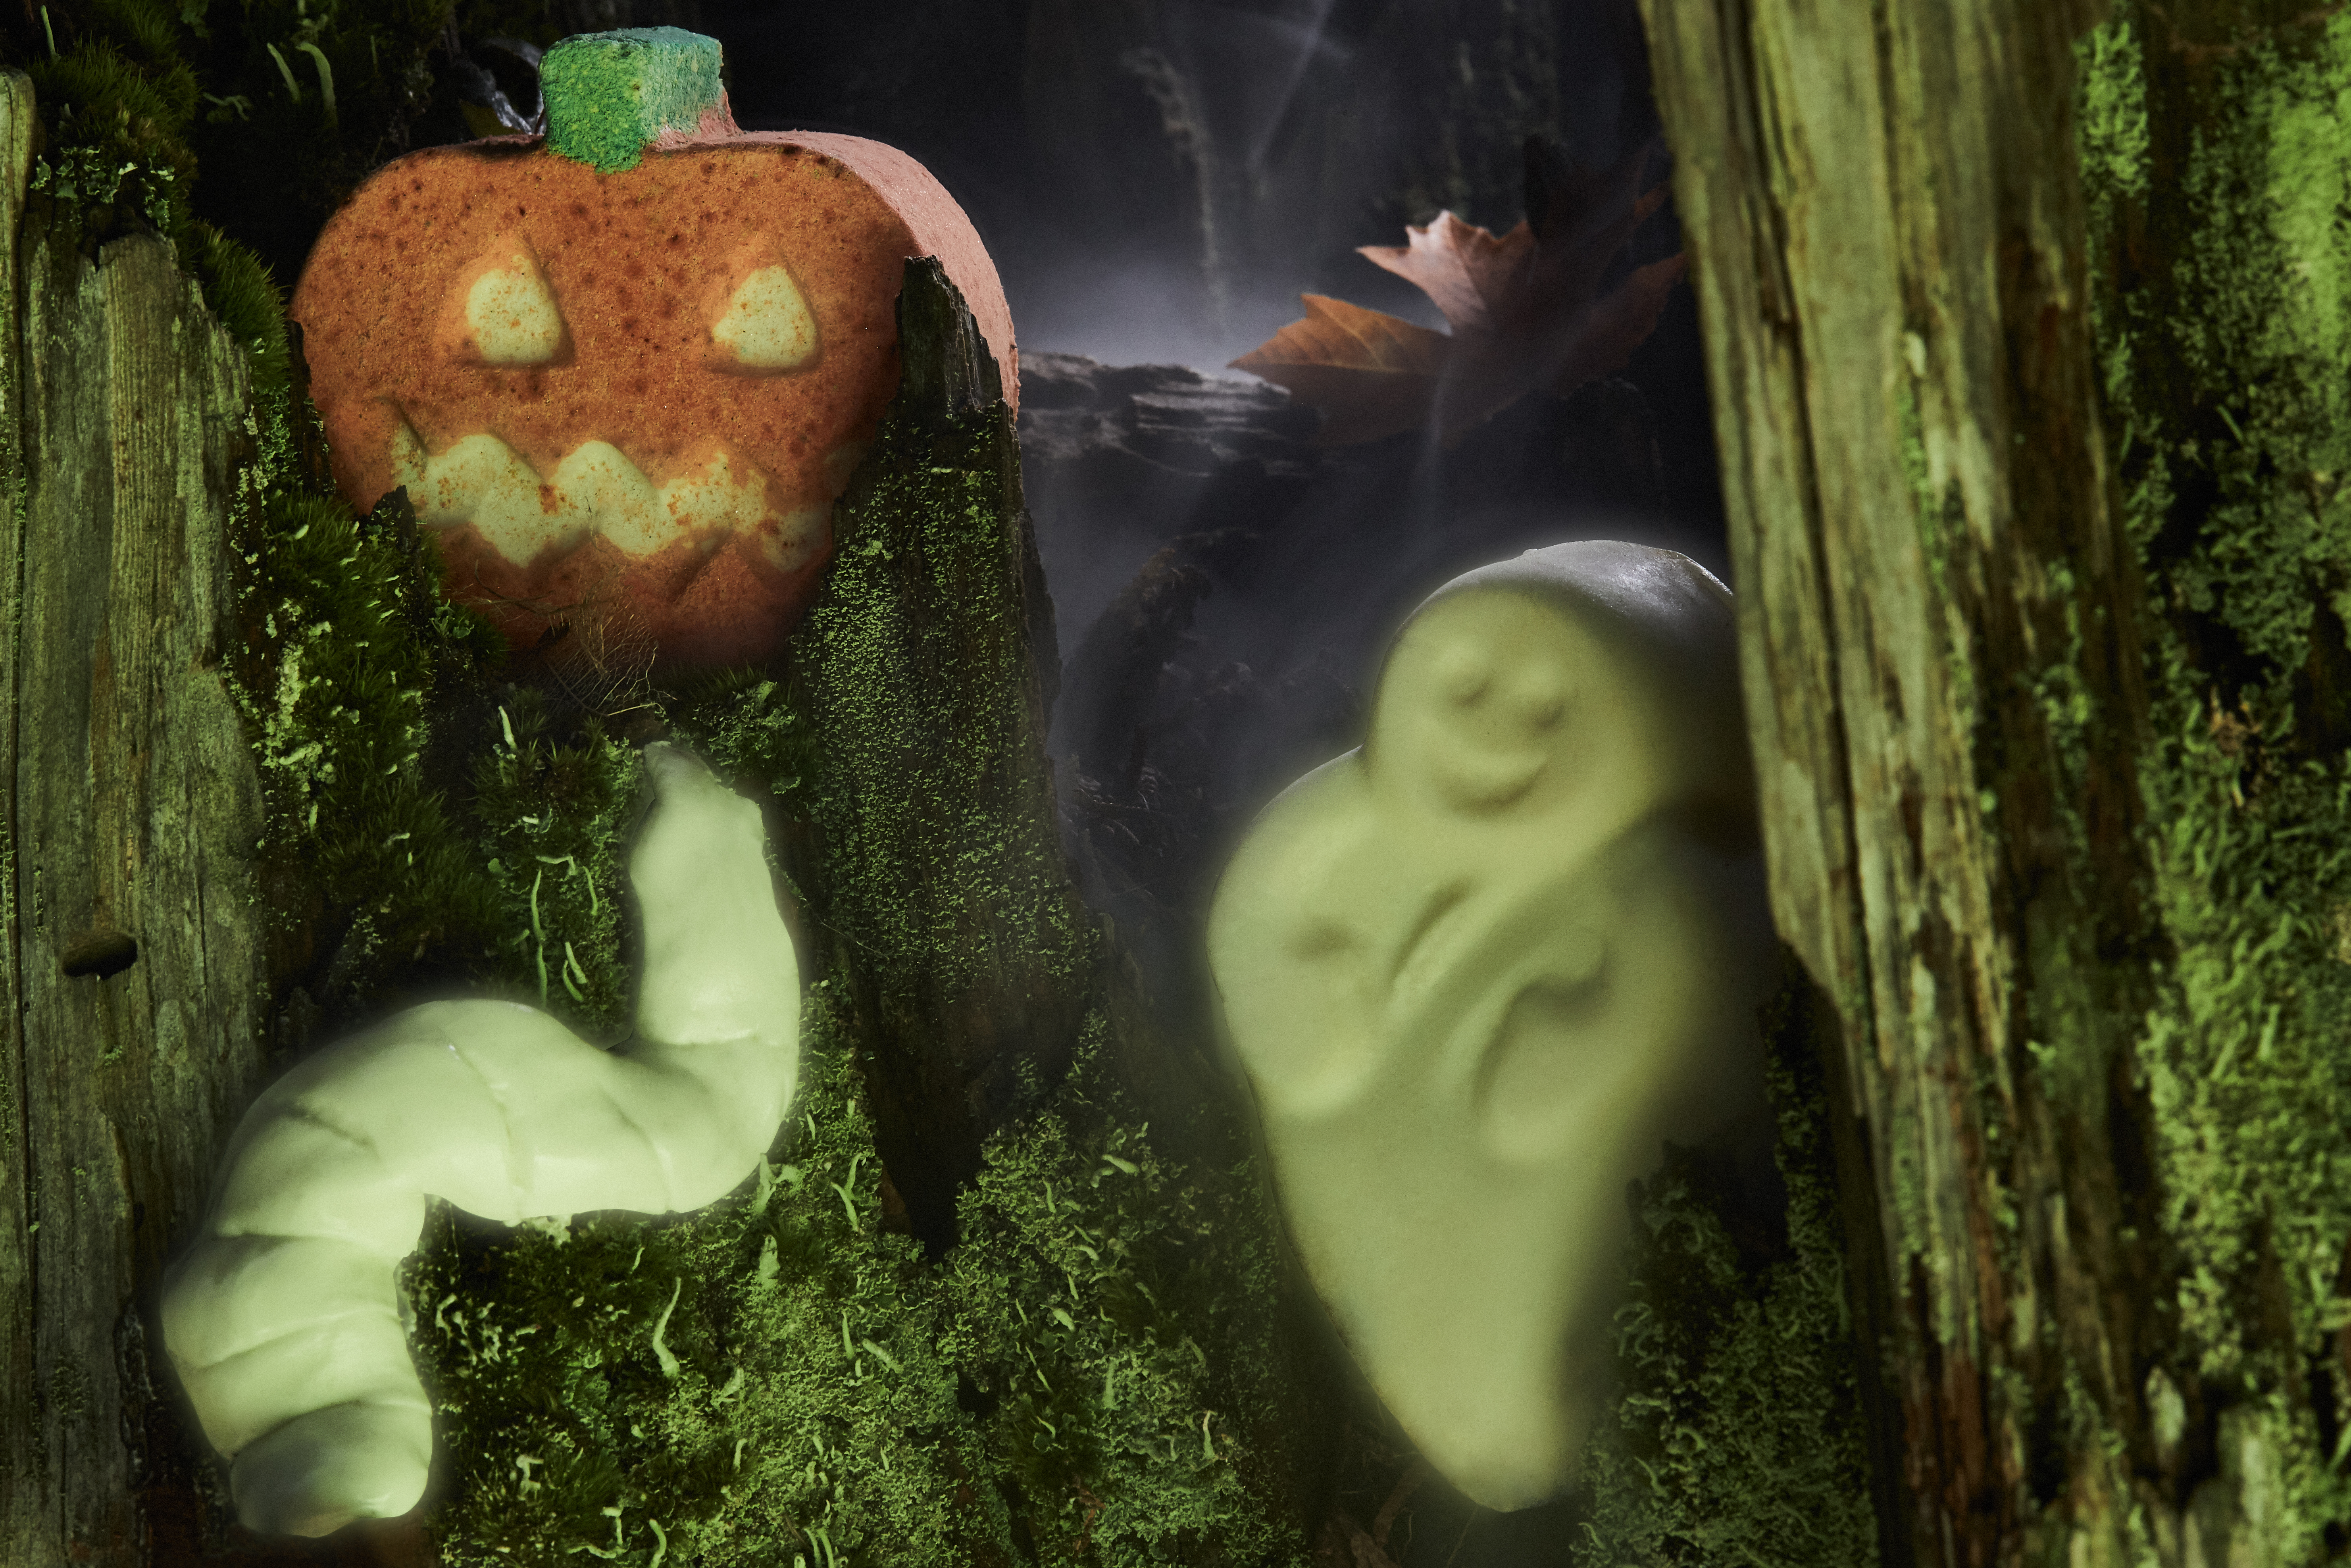 A Punkin Pumpkin Bath Bomb, Ghost In The Dark Soap and Glow Worm Fun nestled in a spooky, mossy tree.